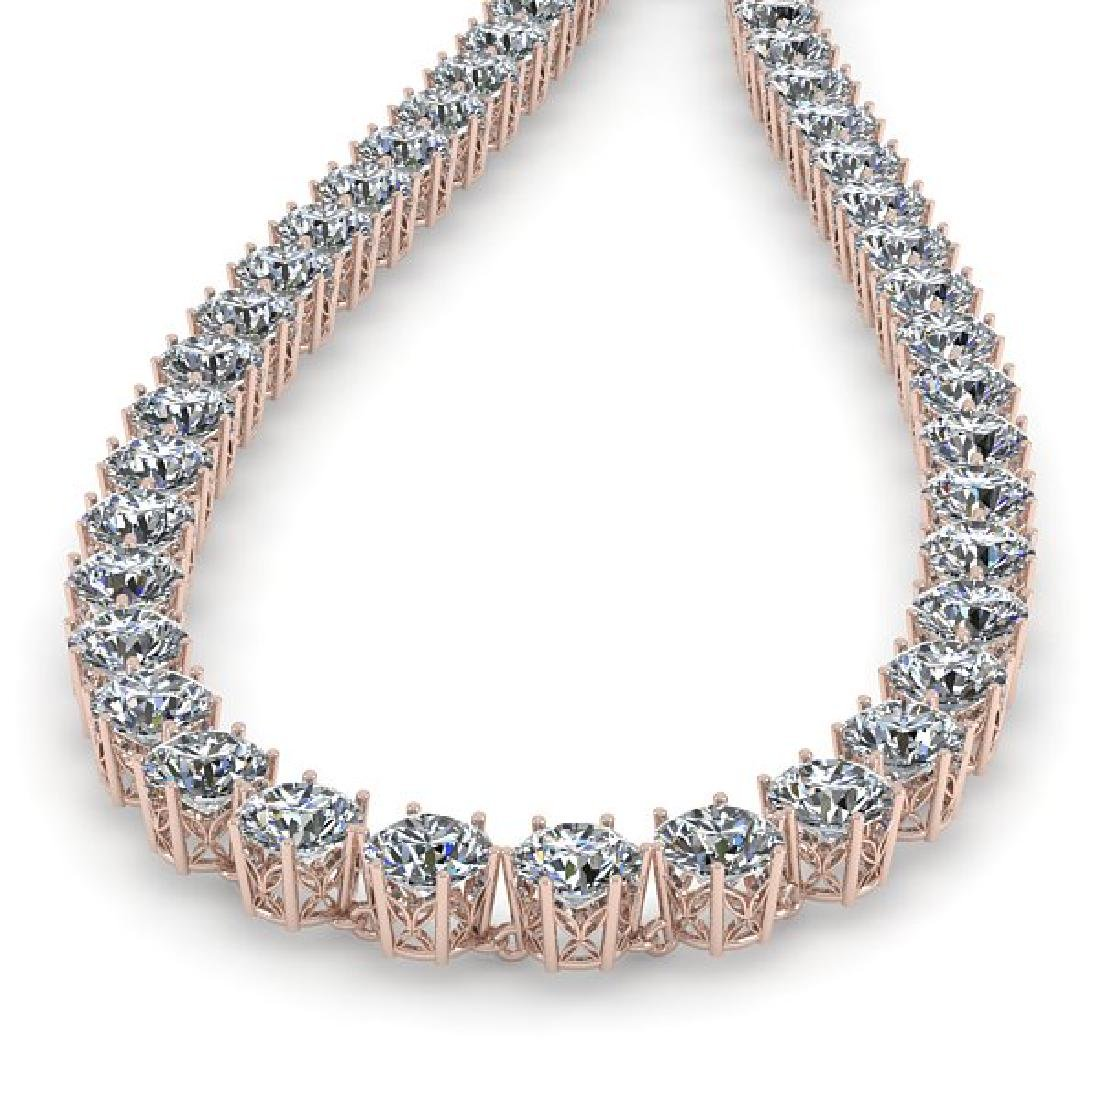 39 CTW SI Certified Diamond Necklace 18K Rose Gold - 2